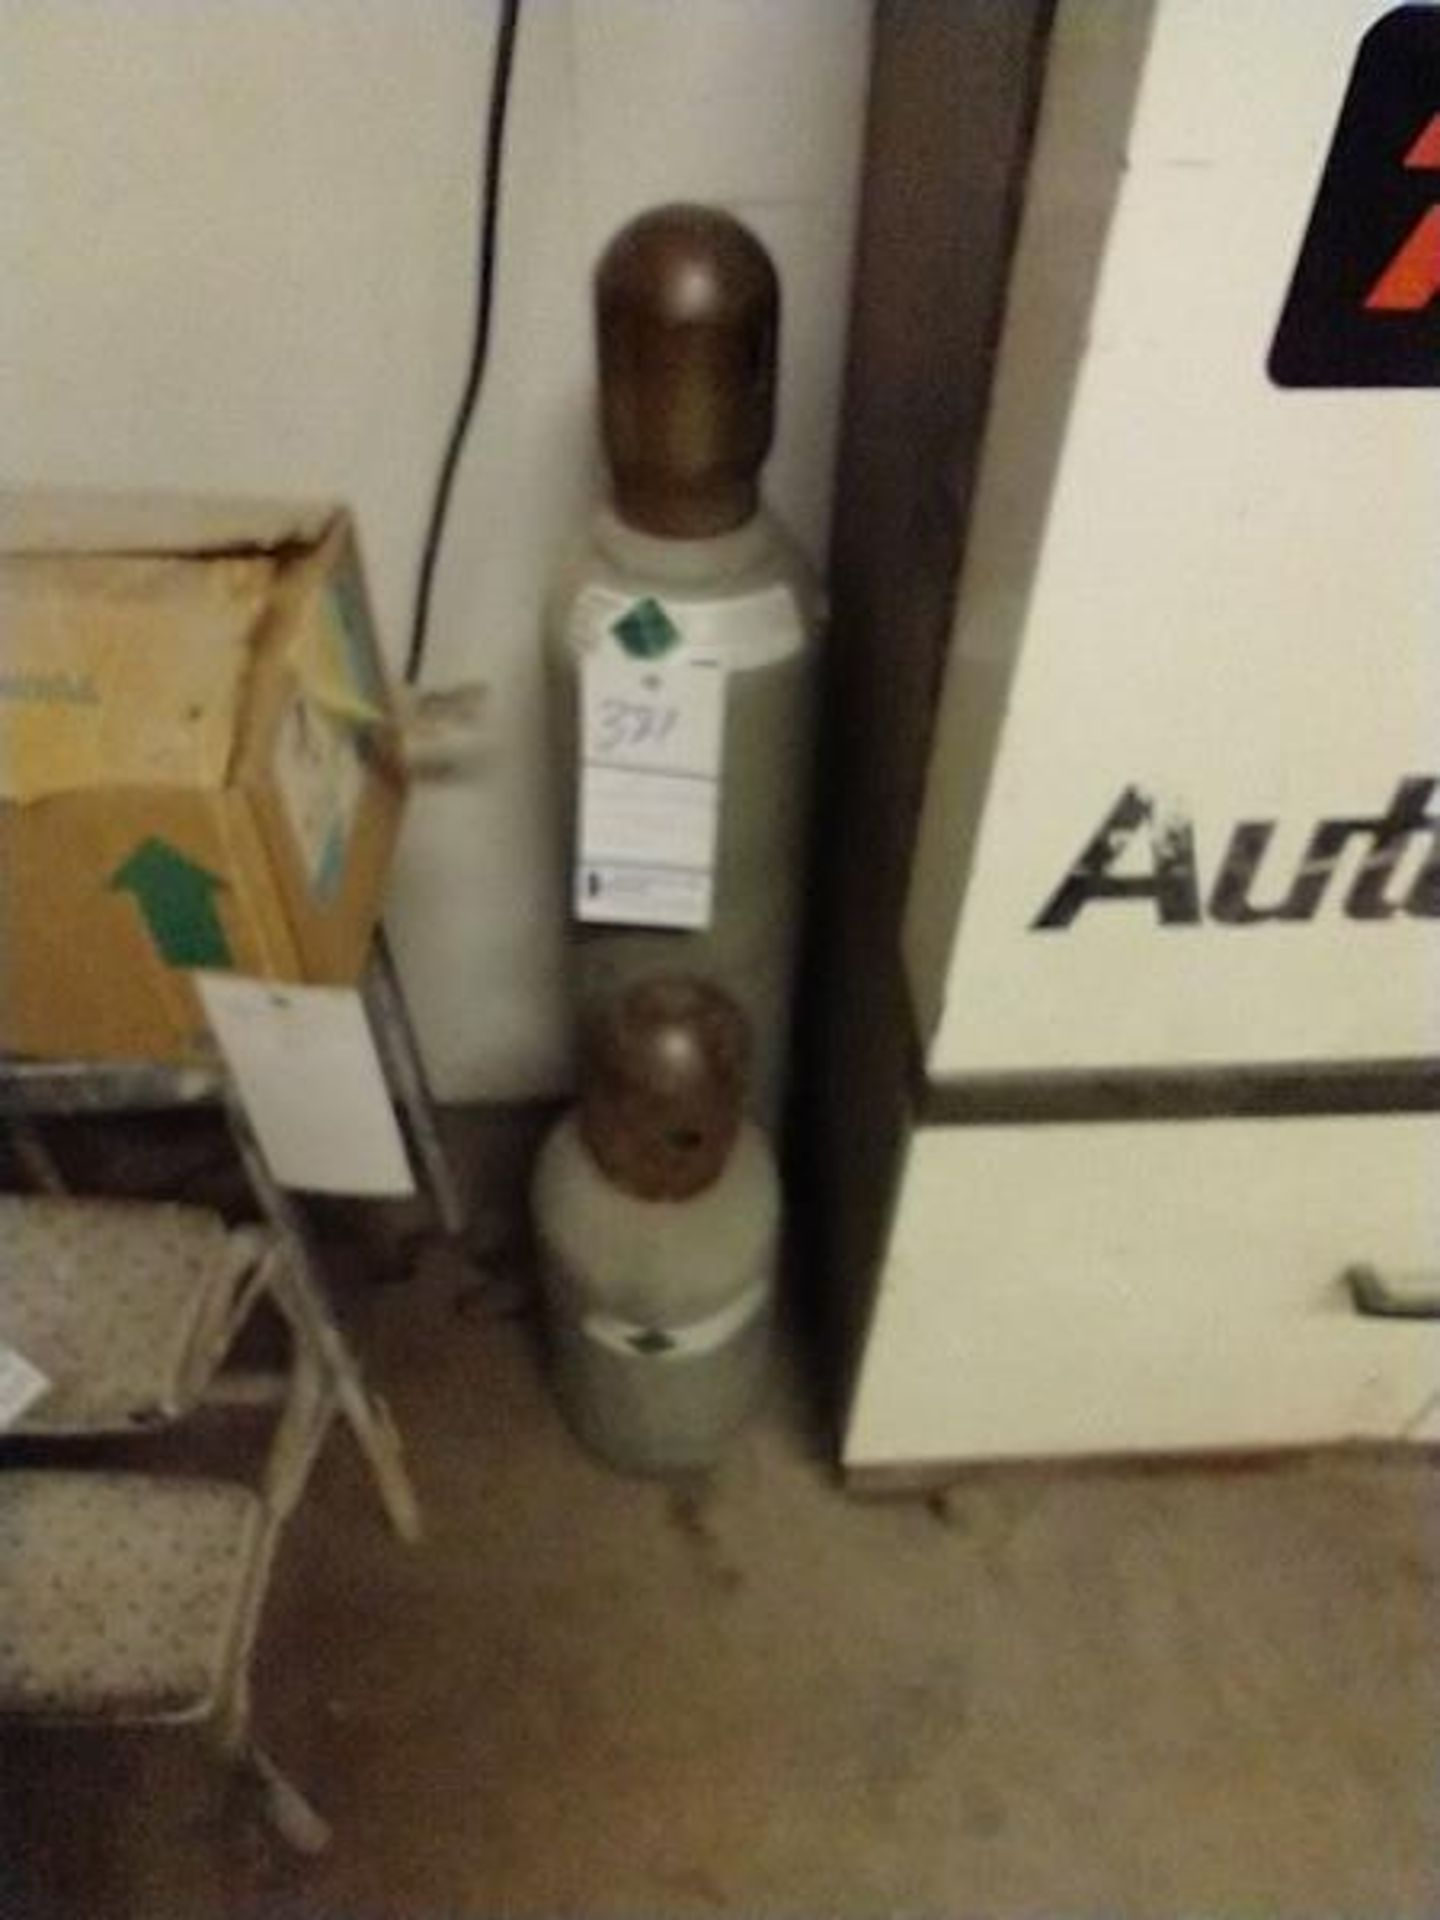 TANKS - GAS AND ARGON - WE DO NOT KNOW IF THESE TANKS CAN BE REFILLED